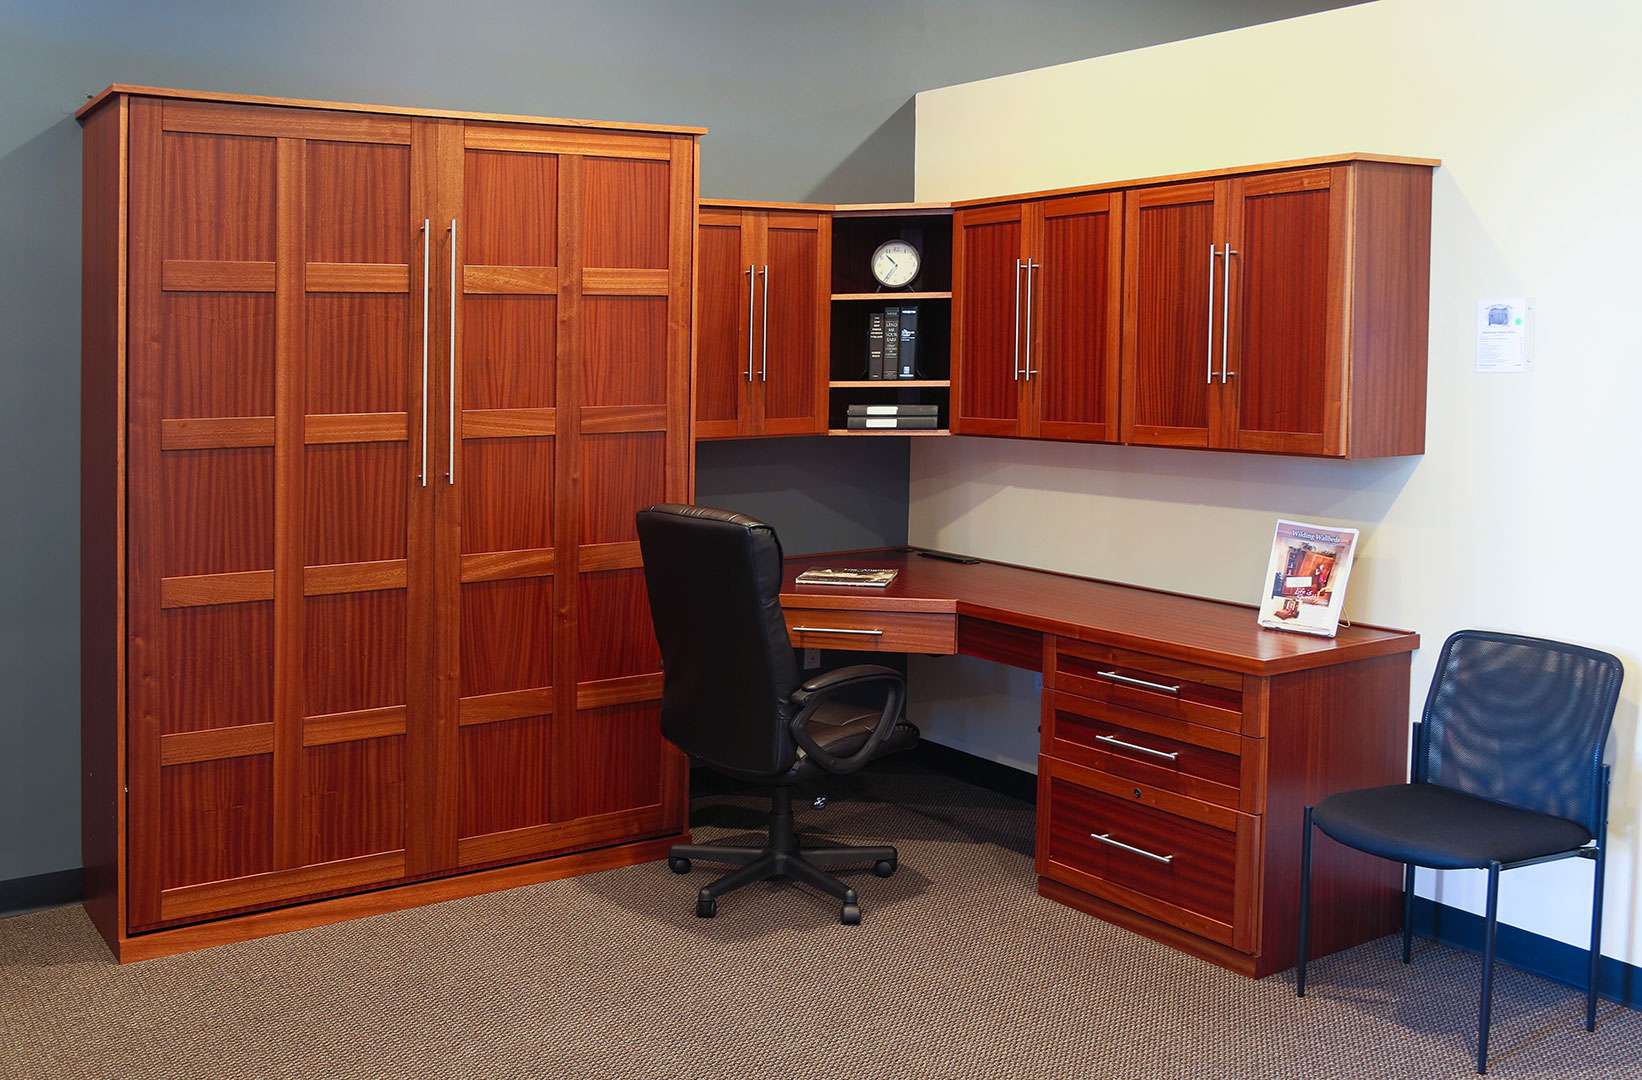 Manhattan style home office with Scape style handles